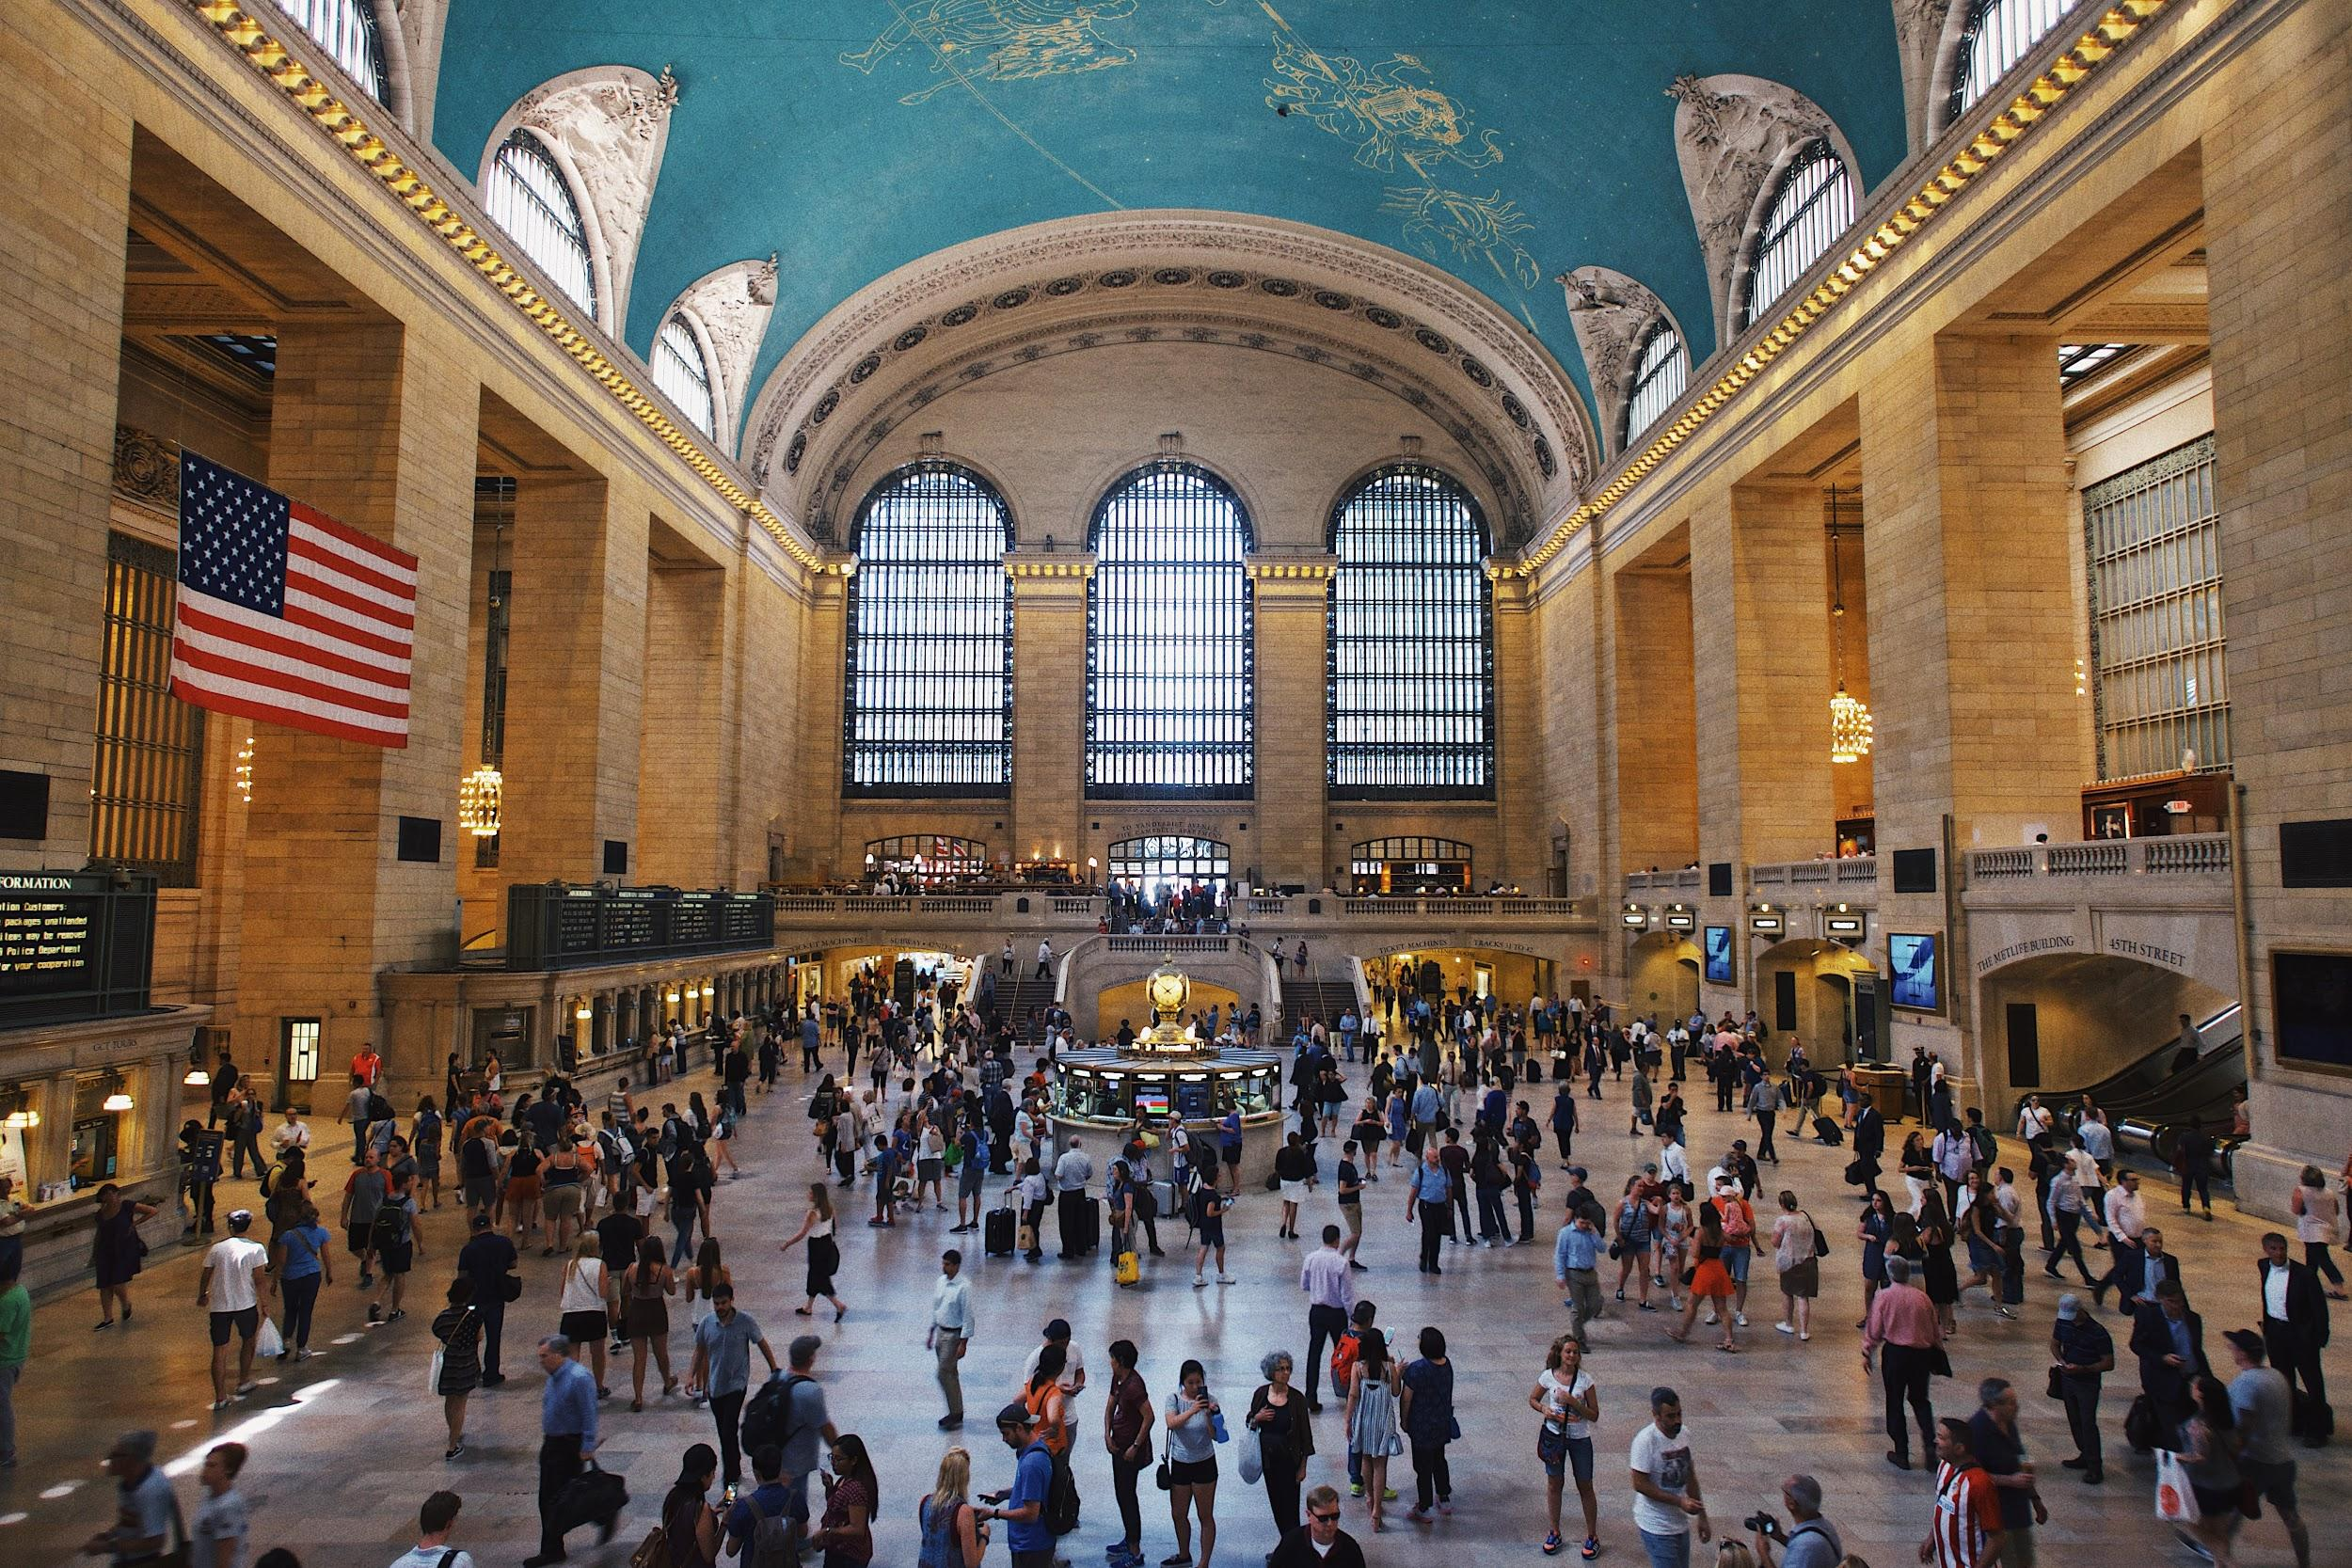 Grand Central Station, New York, New York